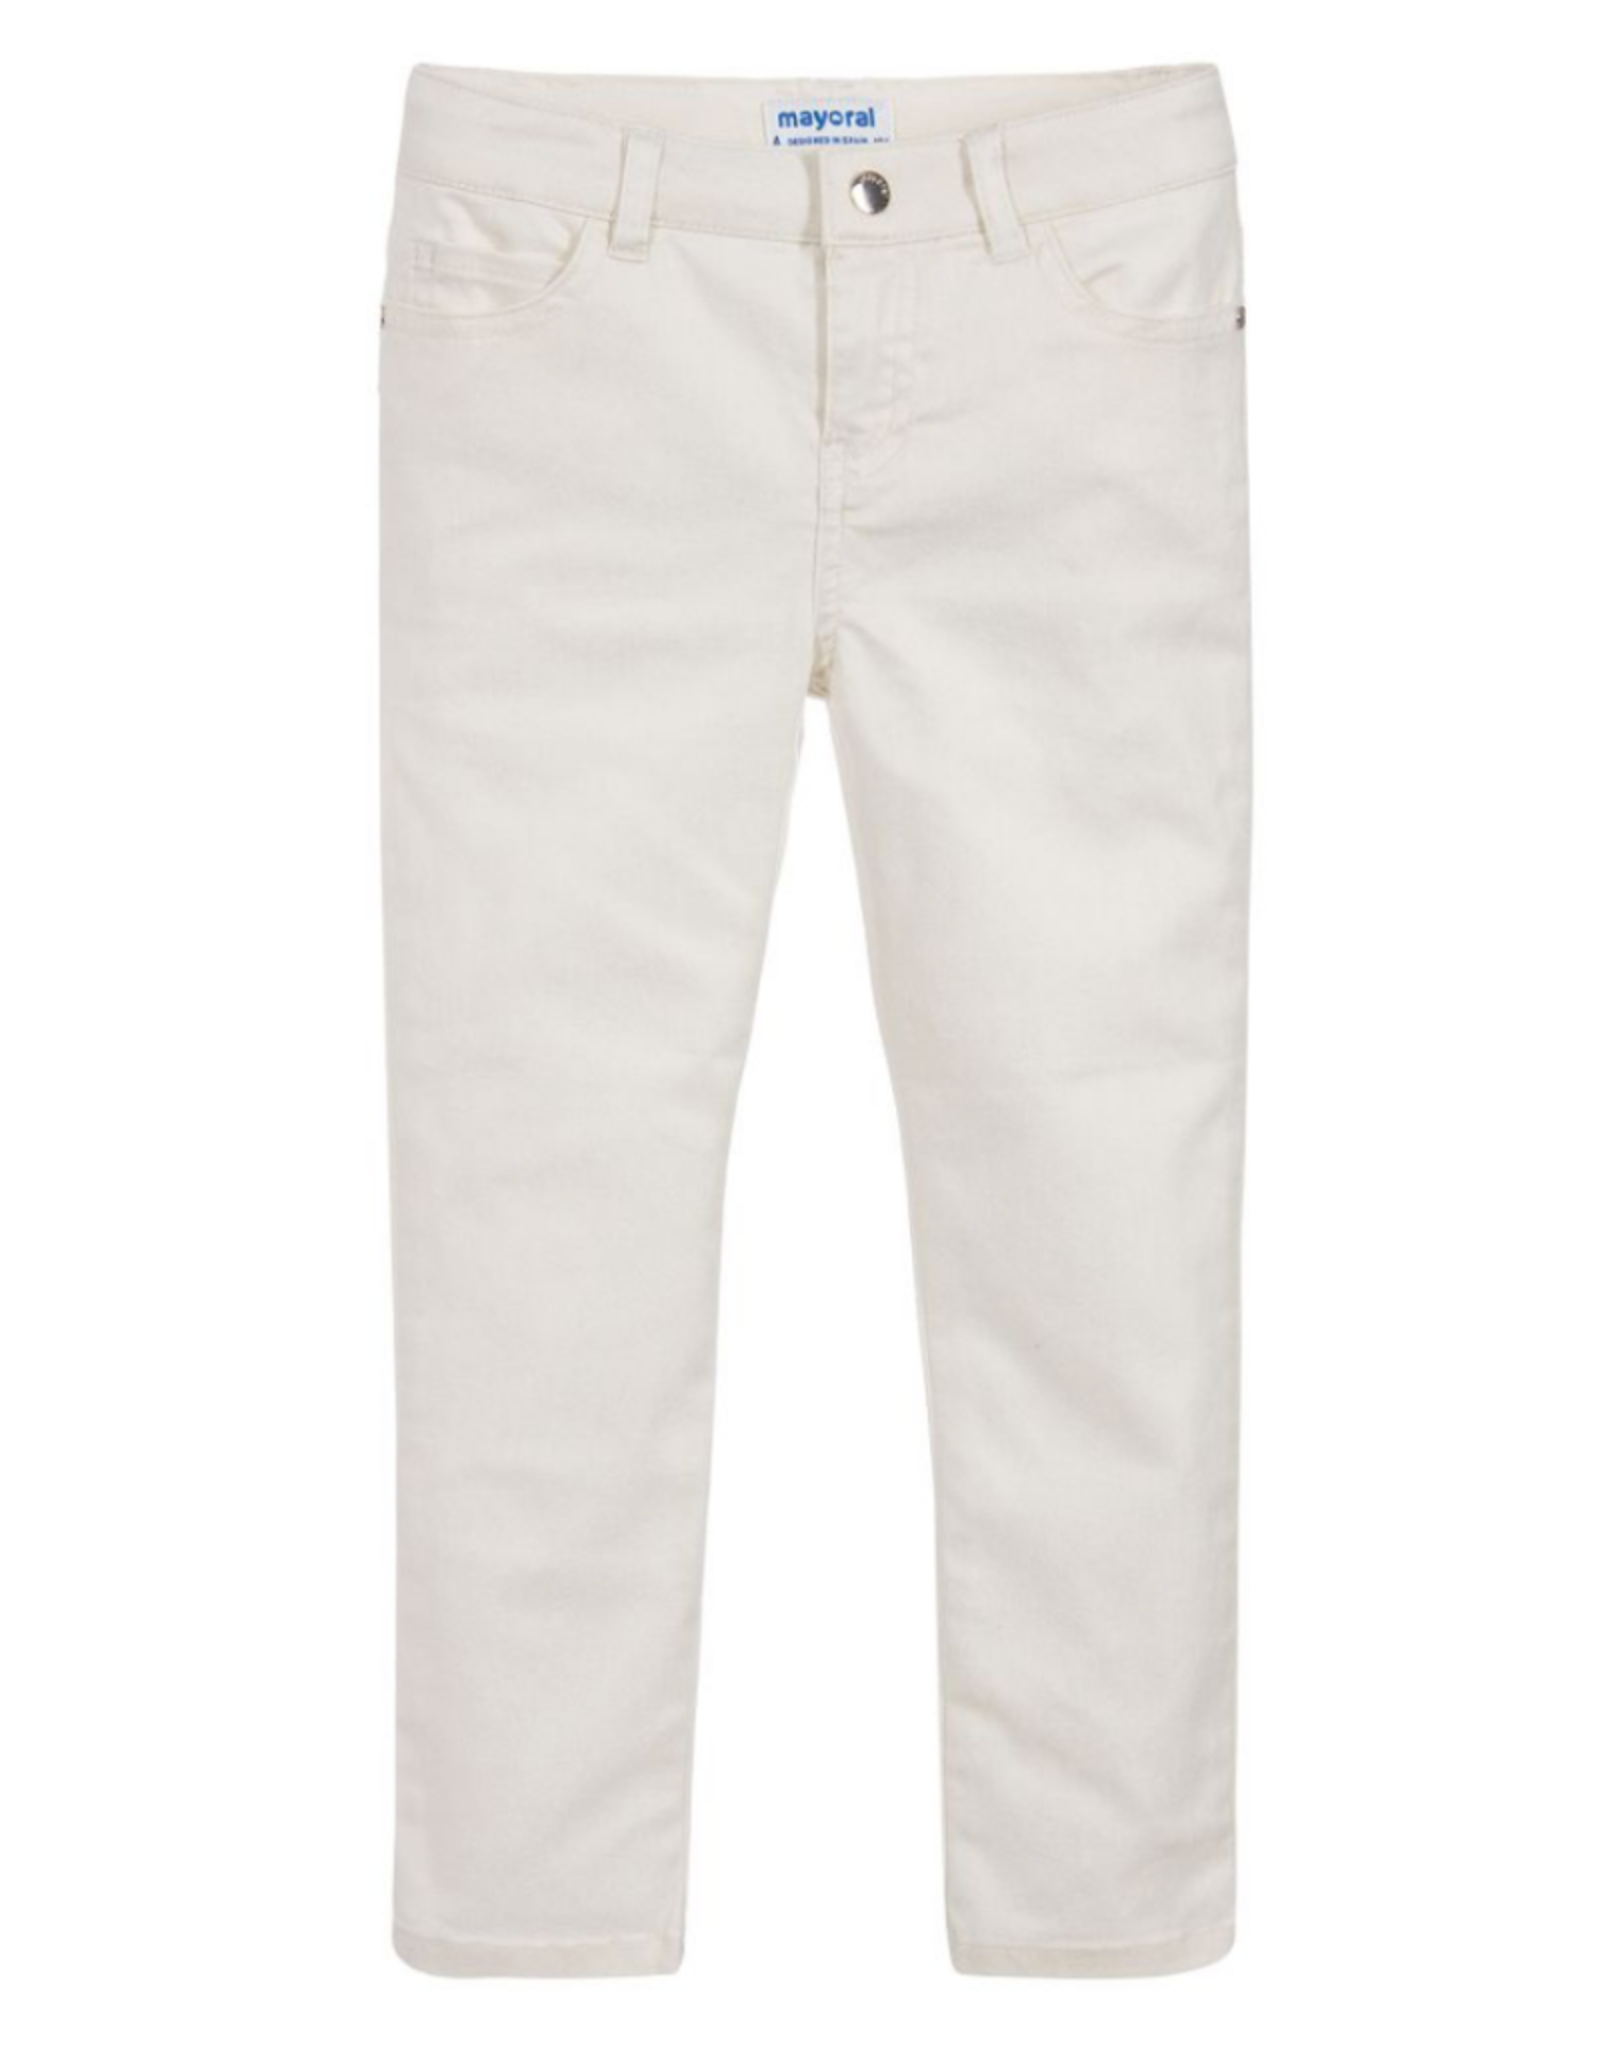 Mayoral Ivory Jeans